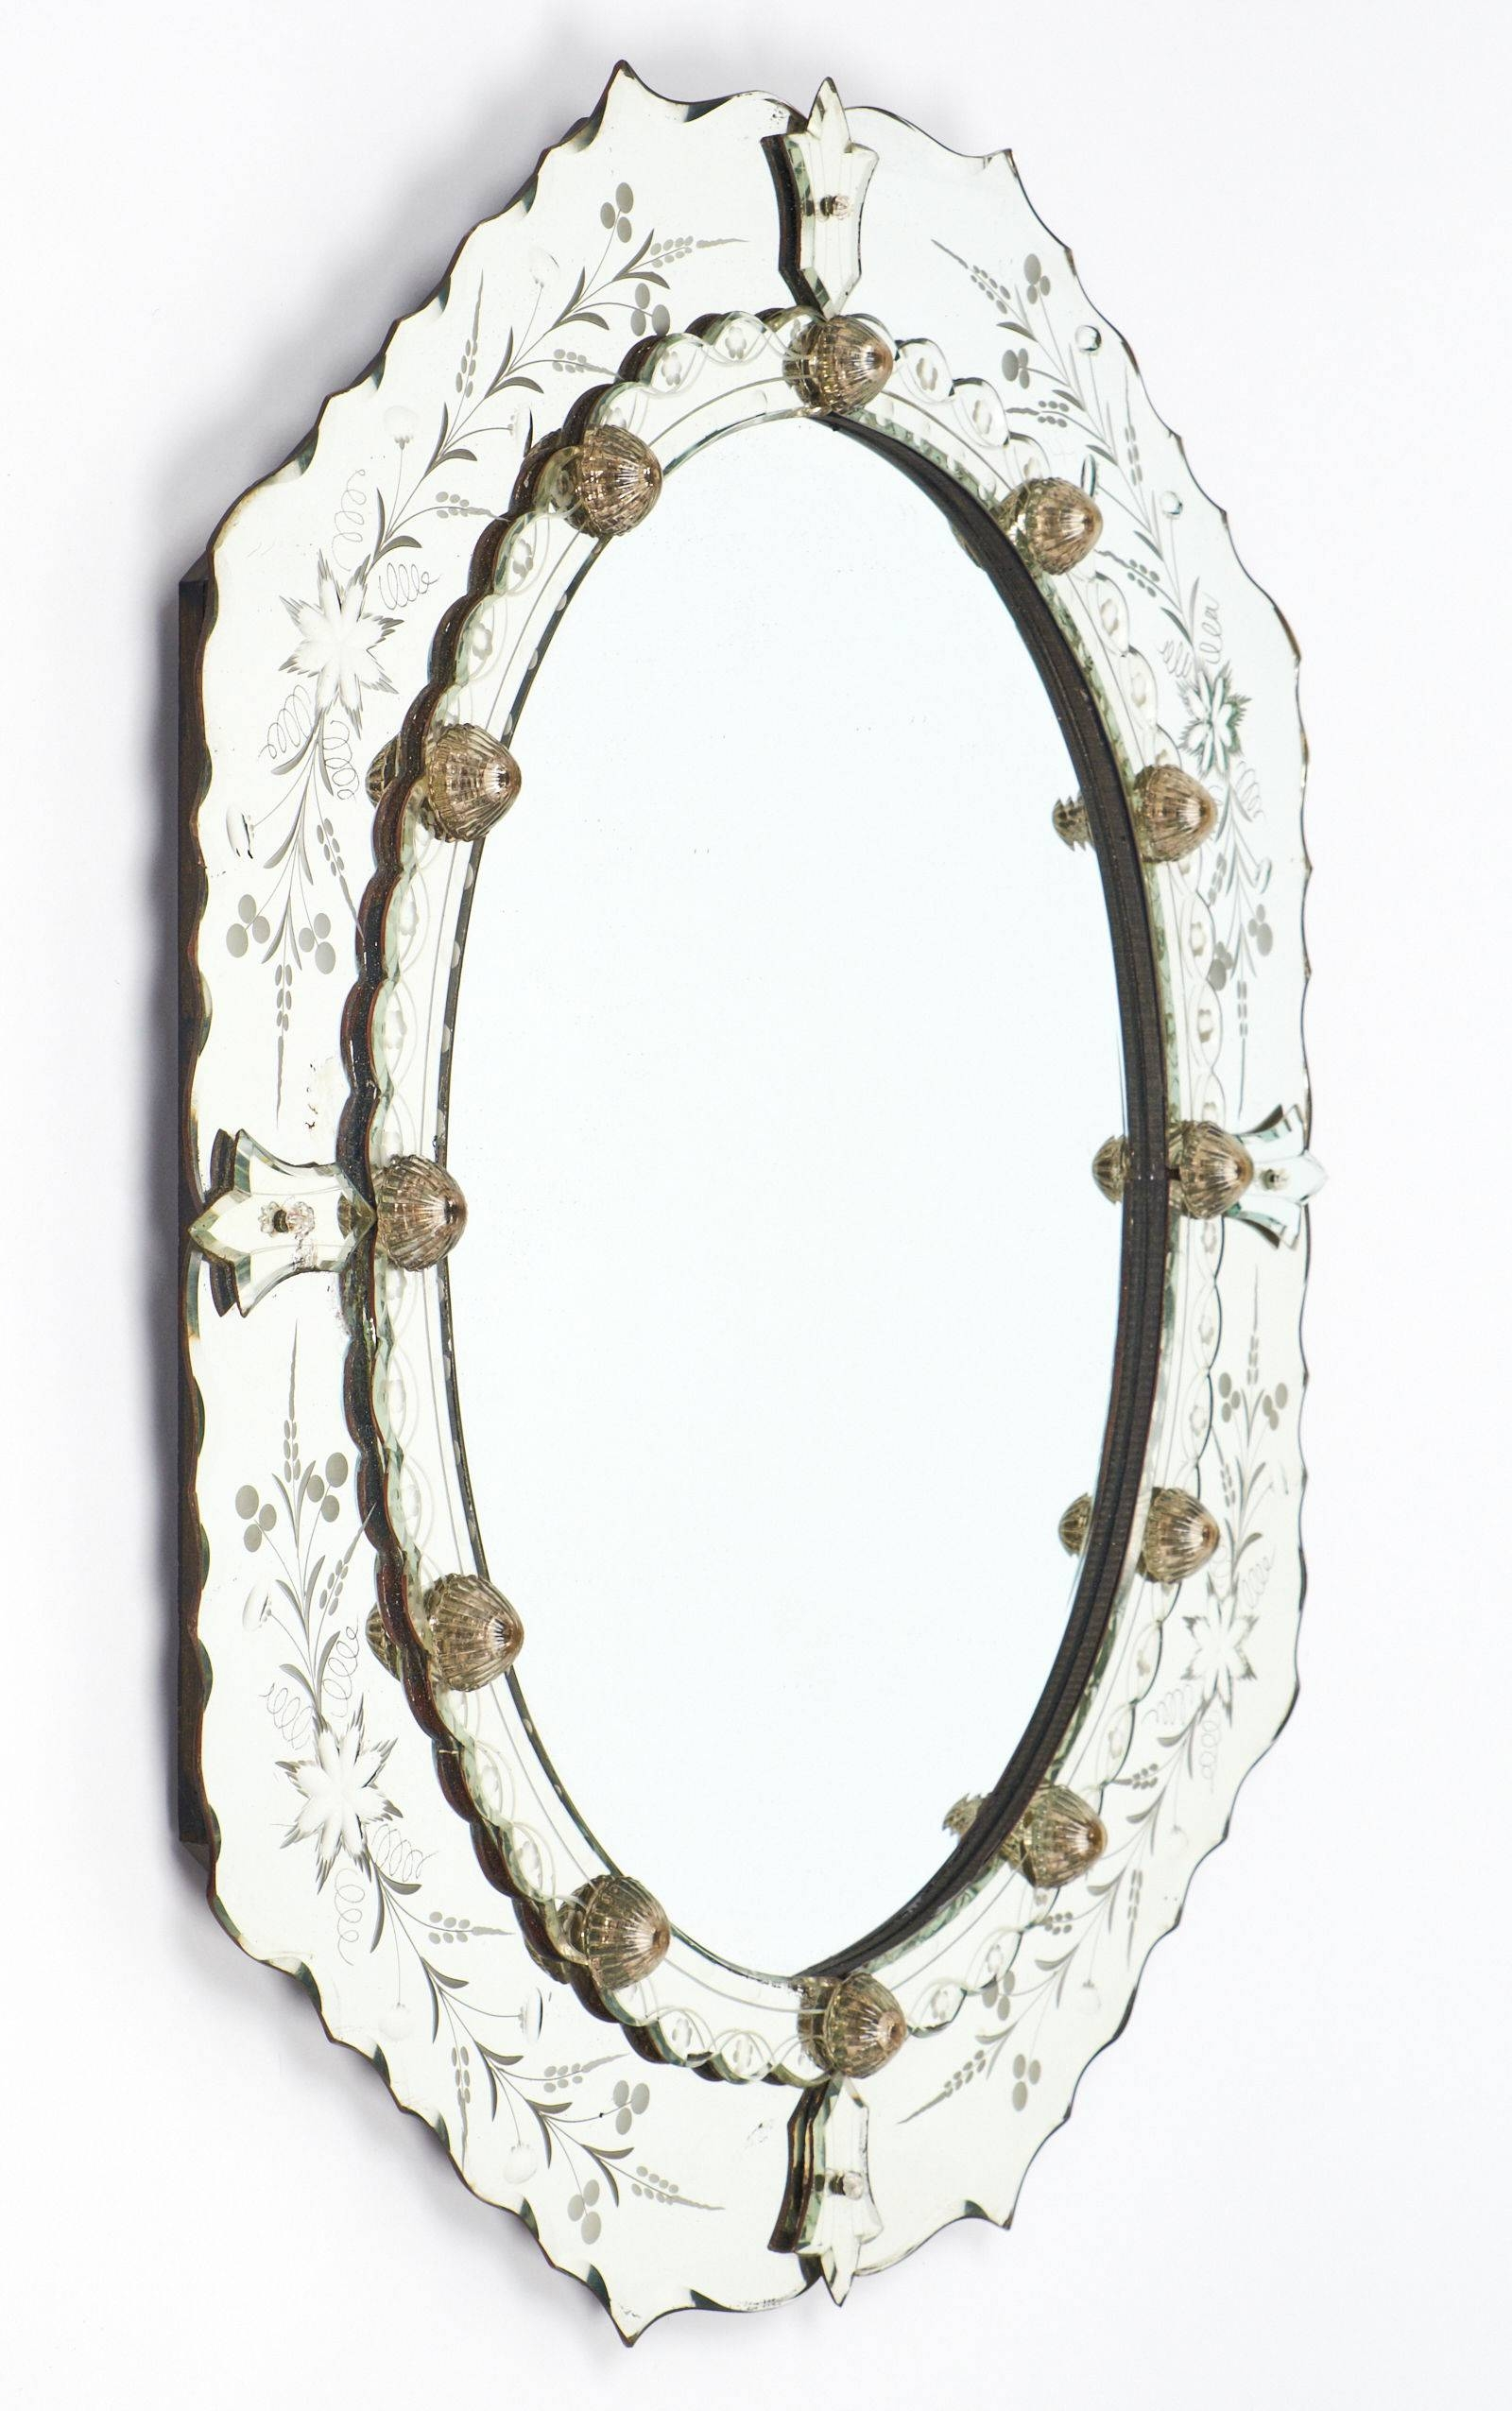 Antique Venetian Glass Oval Mirror – Jean Marc Fray Pertaining To Venetian Oval Mirrors (View 9 of 15)